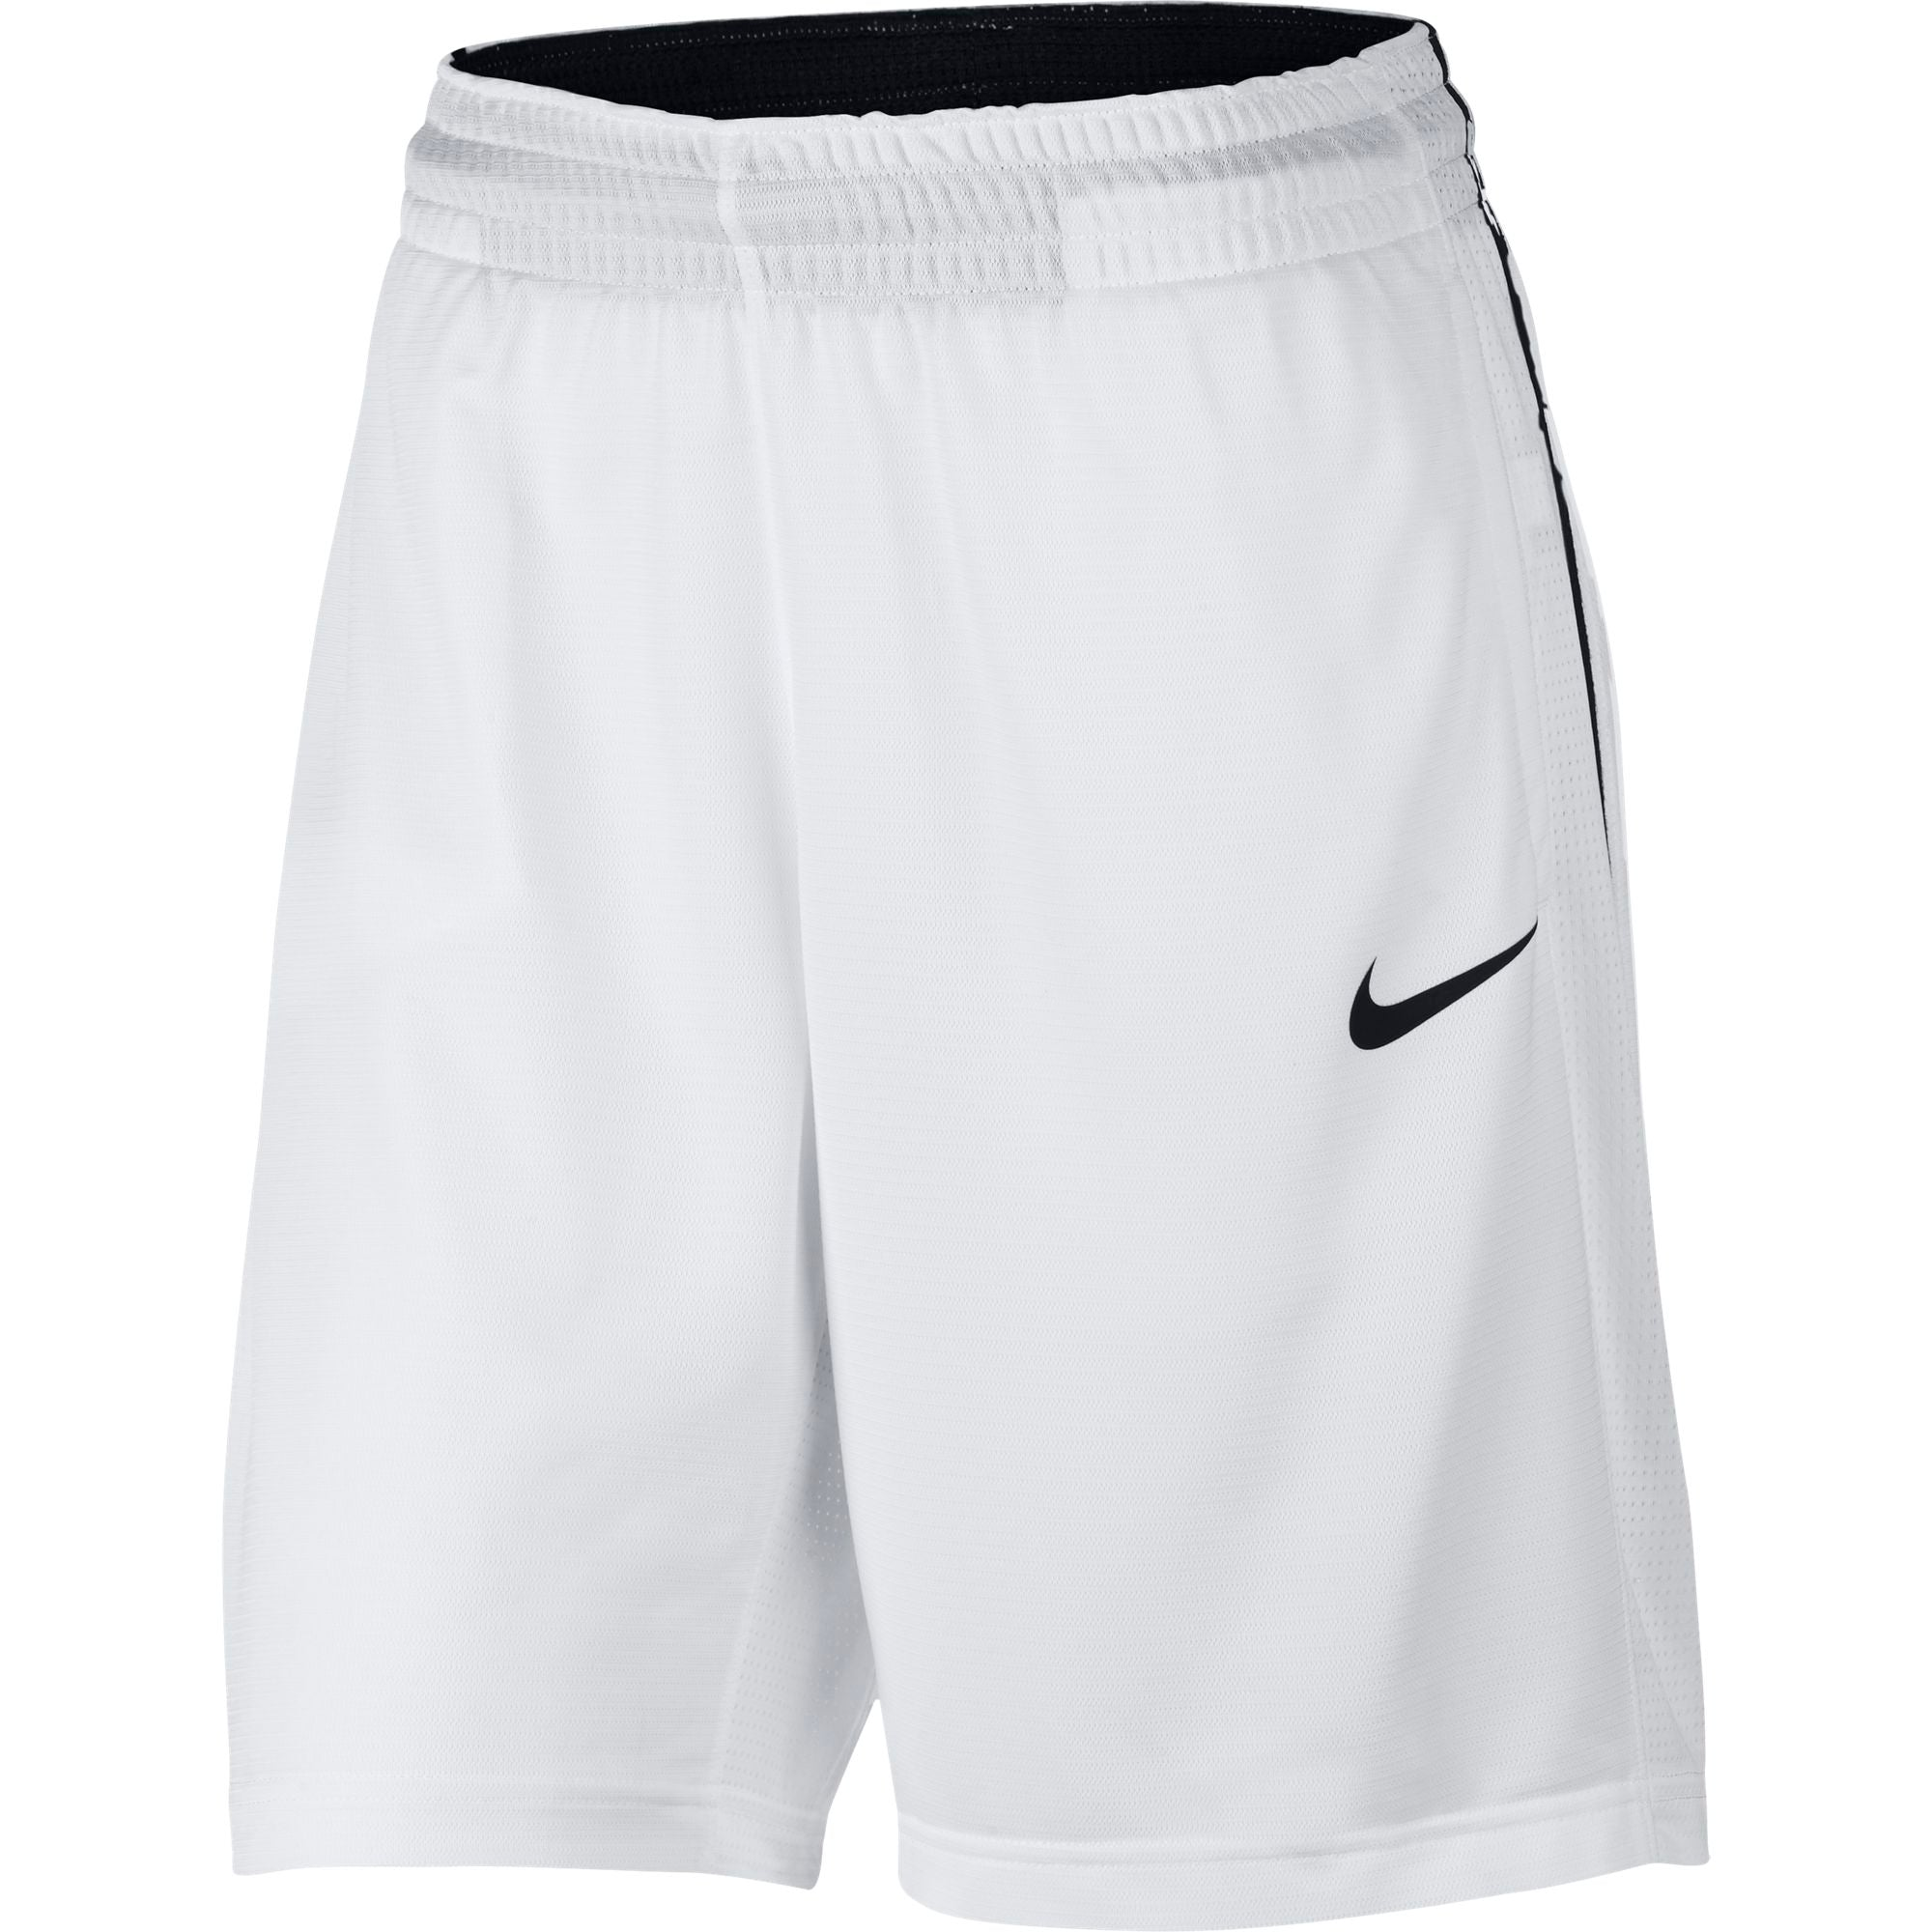 Nike Womens Basketball Dry Shorts - NK-869472-100